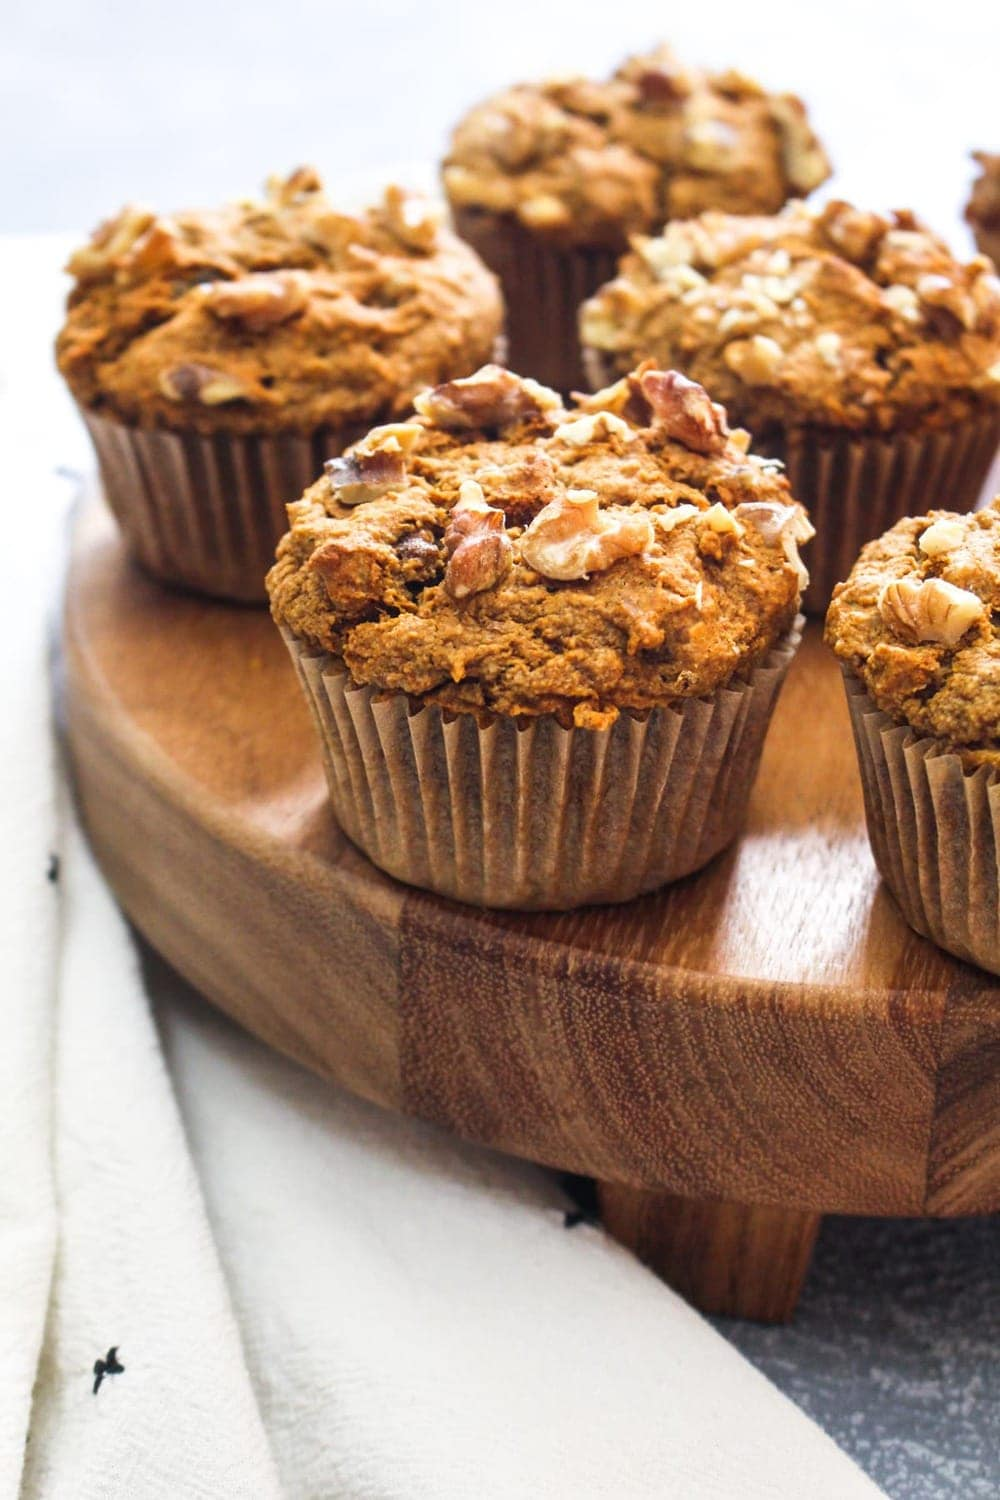 Gluten Free Morning Glory Muffins are a soft and tender pastry that is filled with flavors including nuts, dried fruit, orange zest, and carrots. This recipe is made with whole grains and natural sweeteners for a satiating breakfast or snack! | CatchingSeeds.com